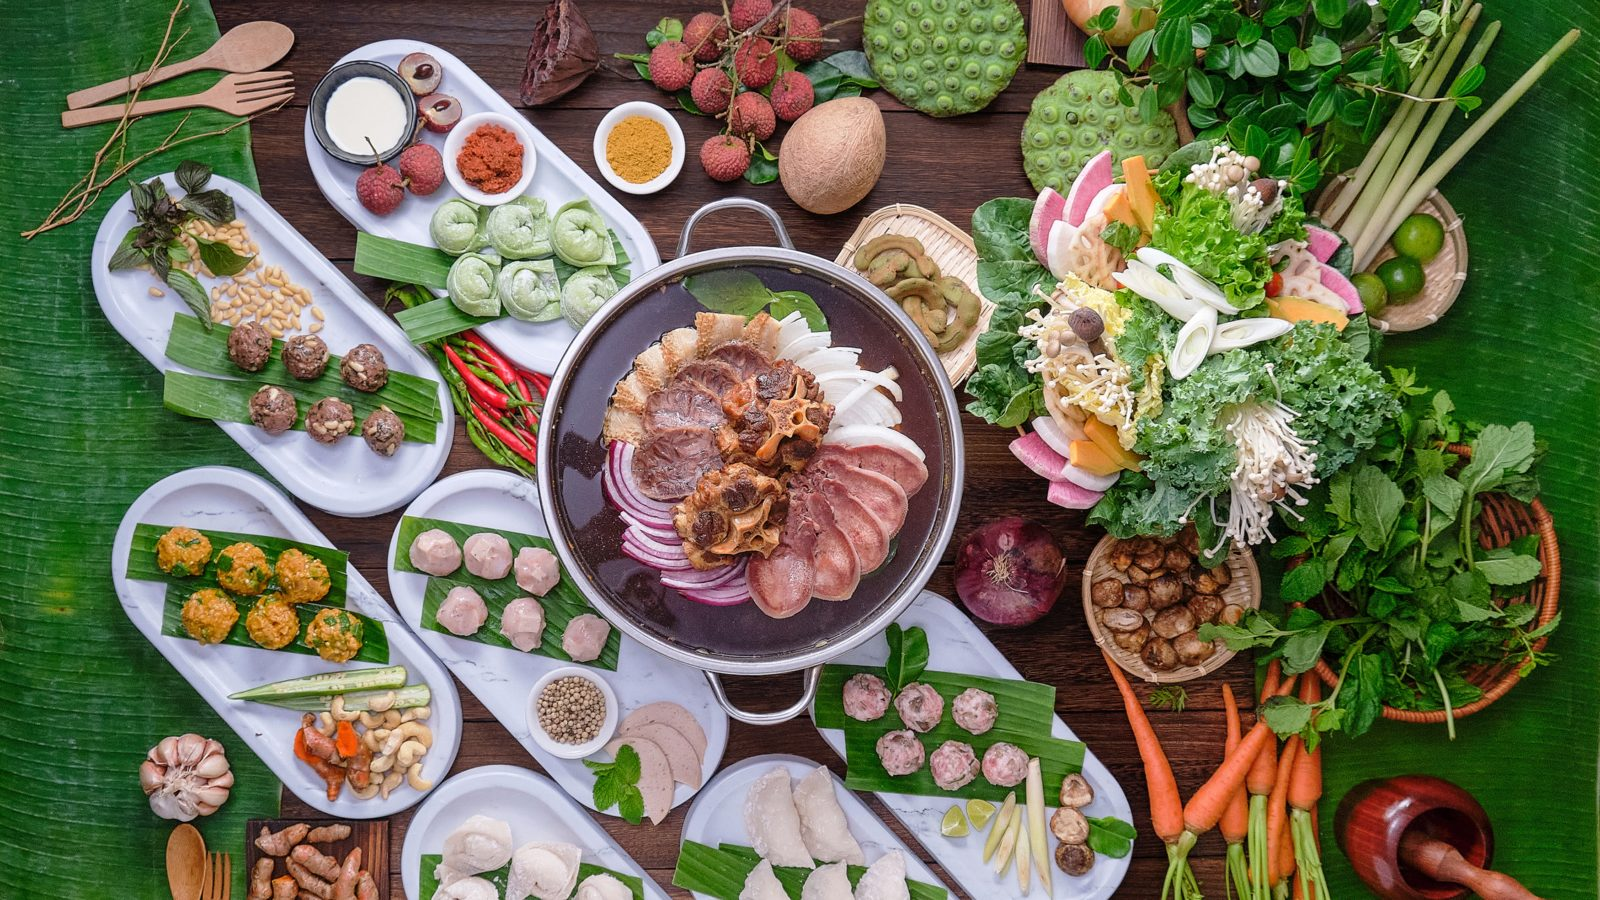 Plates, Bibs and Stars! foodpanda brings Michelin dining into your home